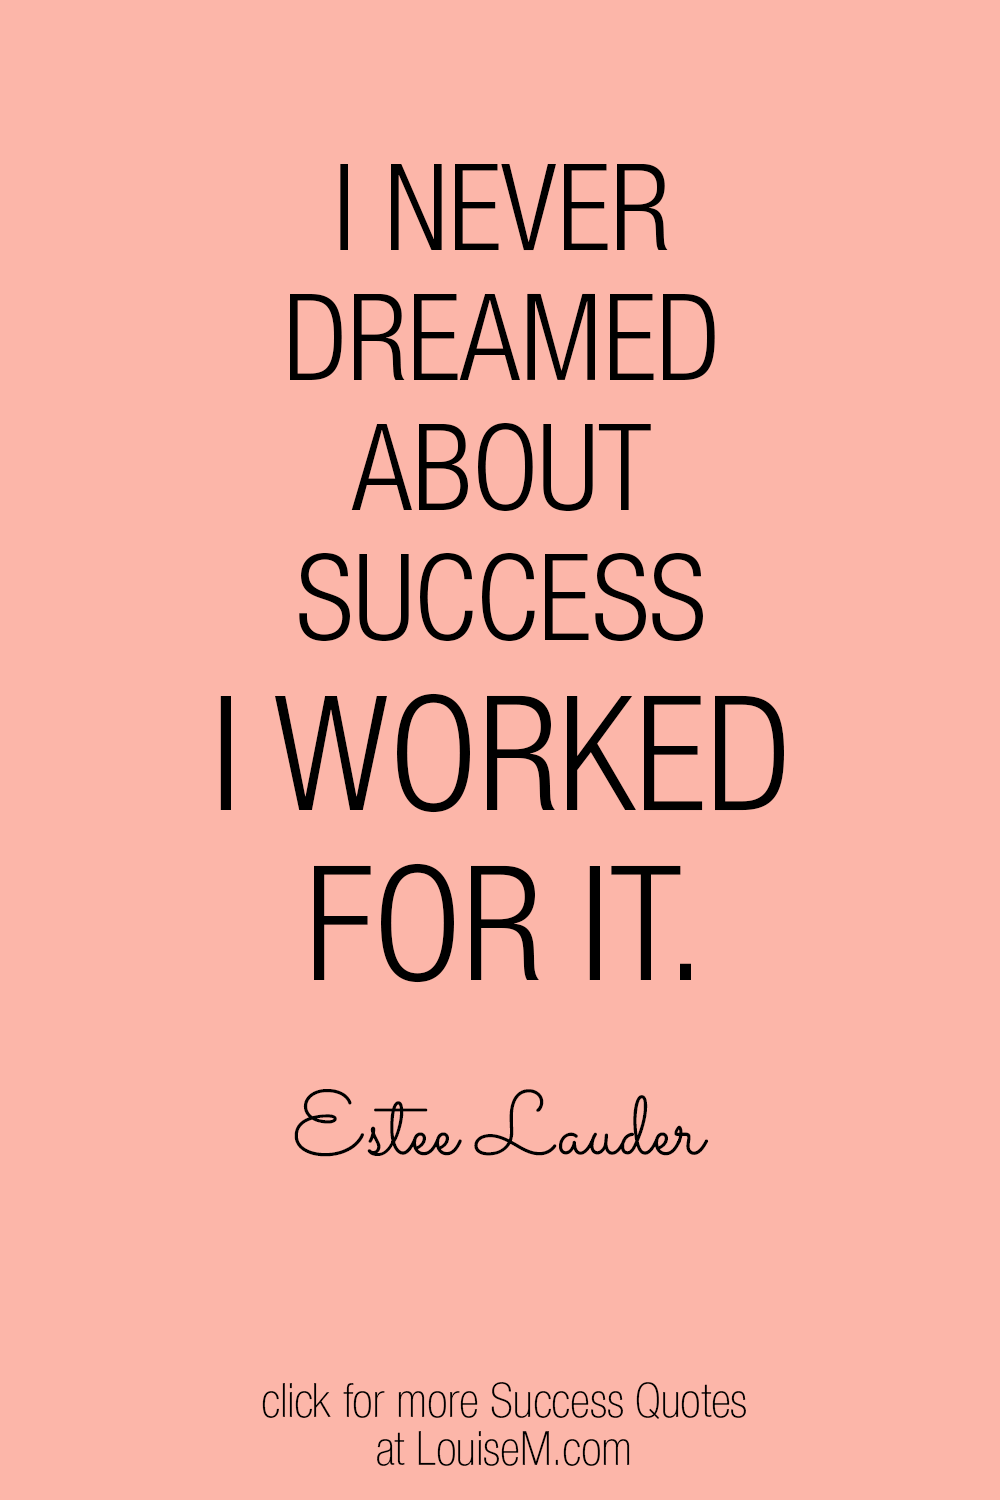 I worked for success picture quote